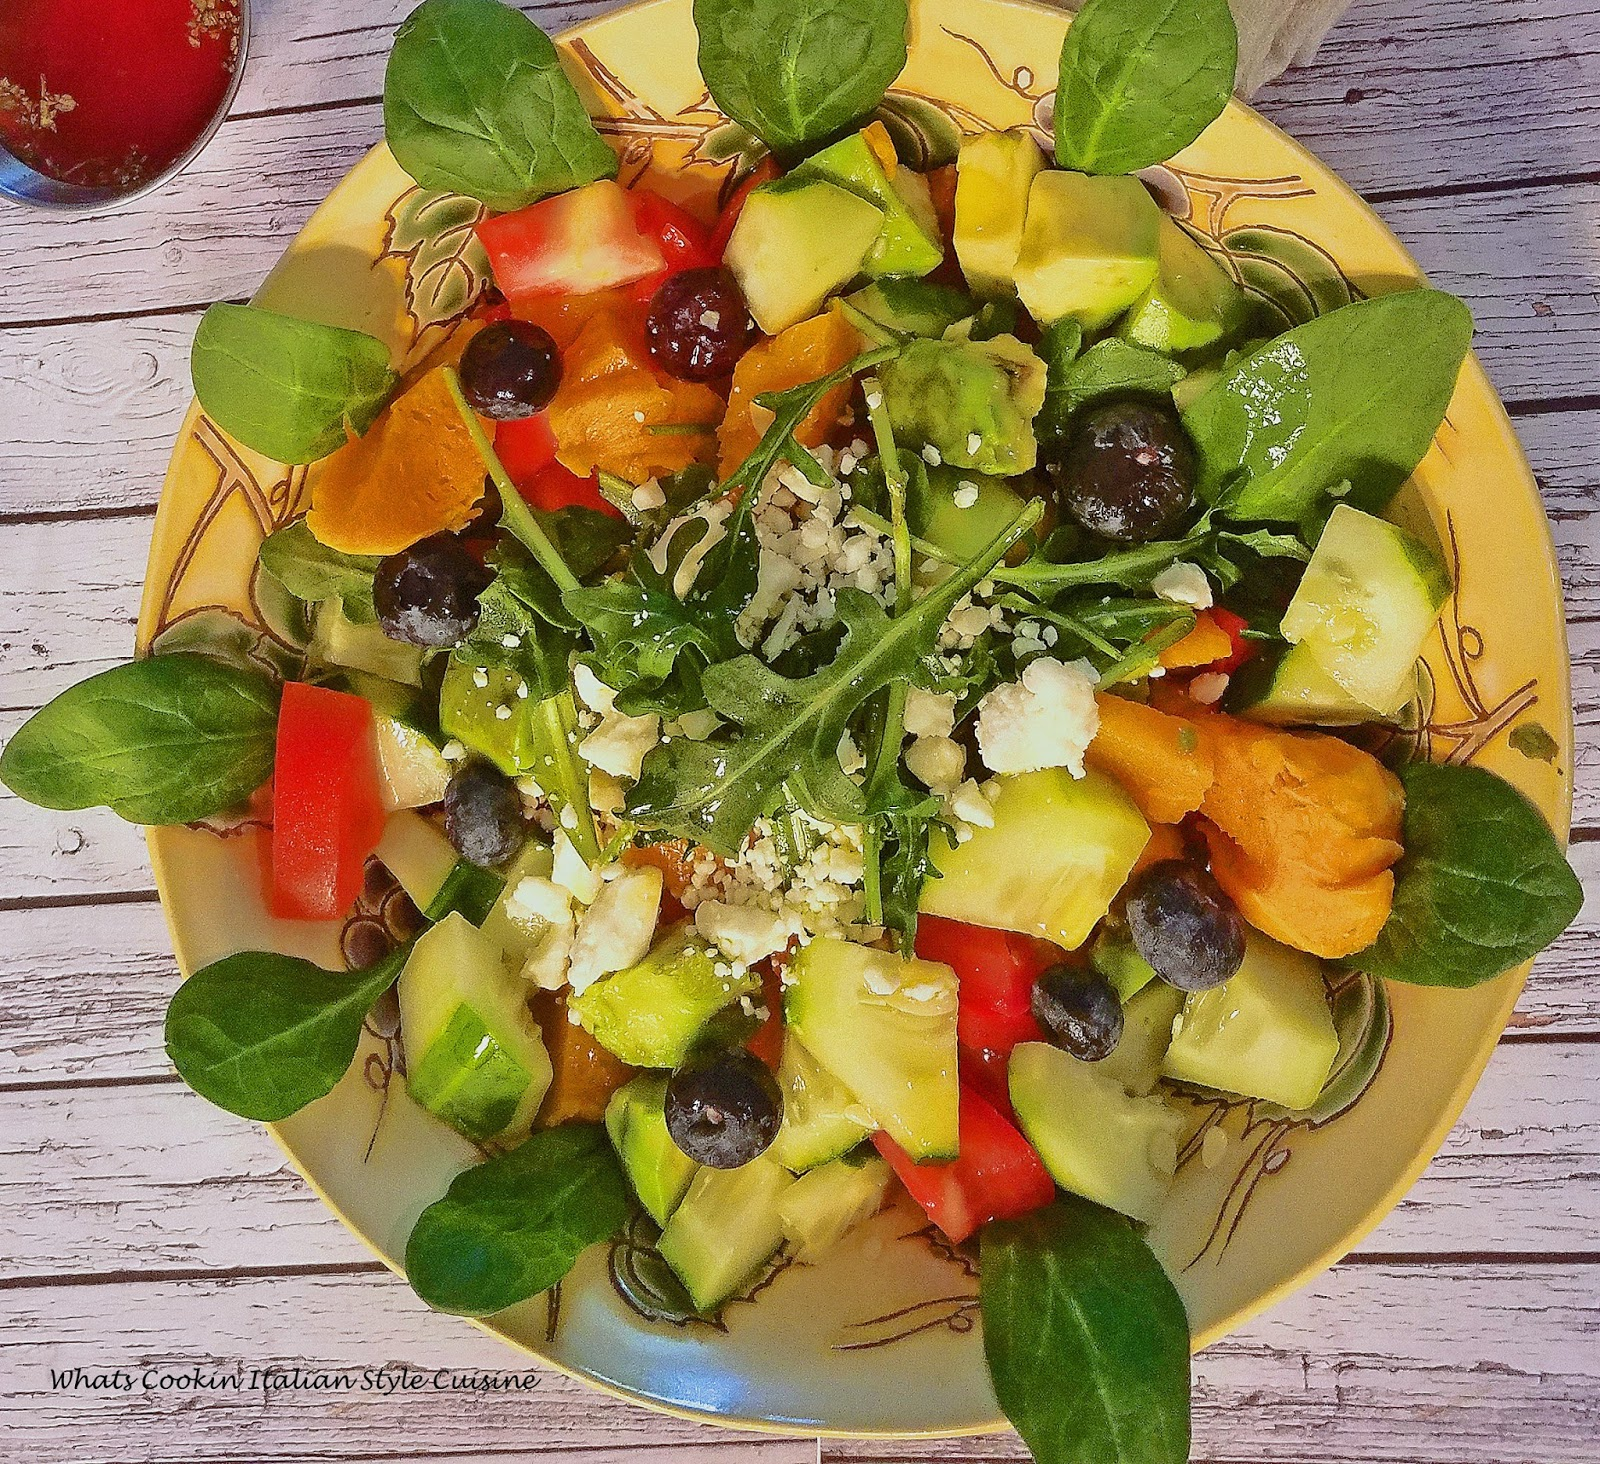 this is a healthy butternut squash salad. This diet salad has everything low calorie, keto friendly, vegan or vegetarian to keep your diet healthy and in control.